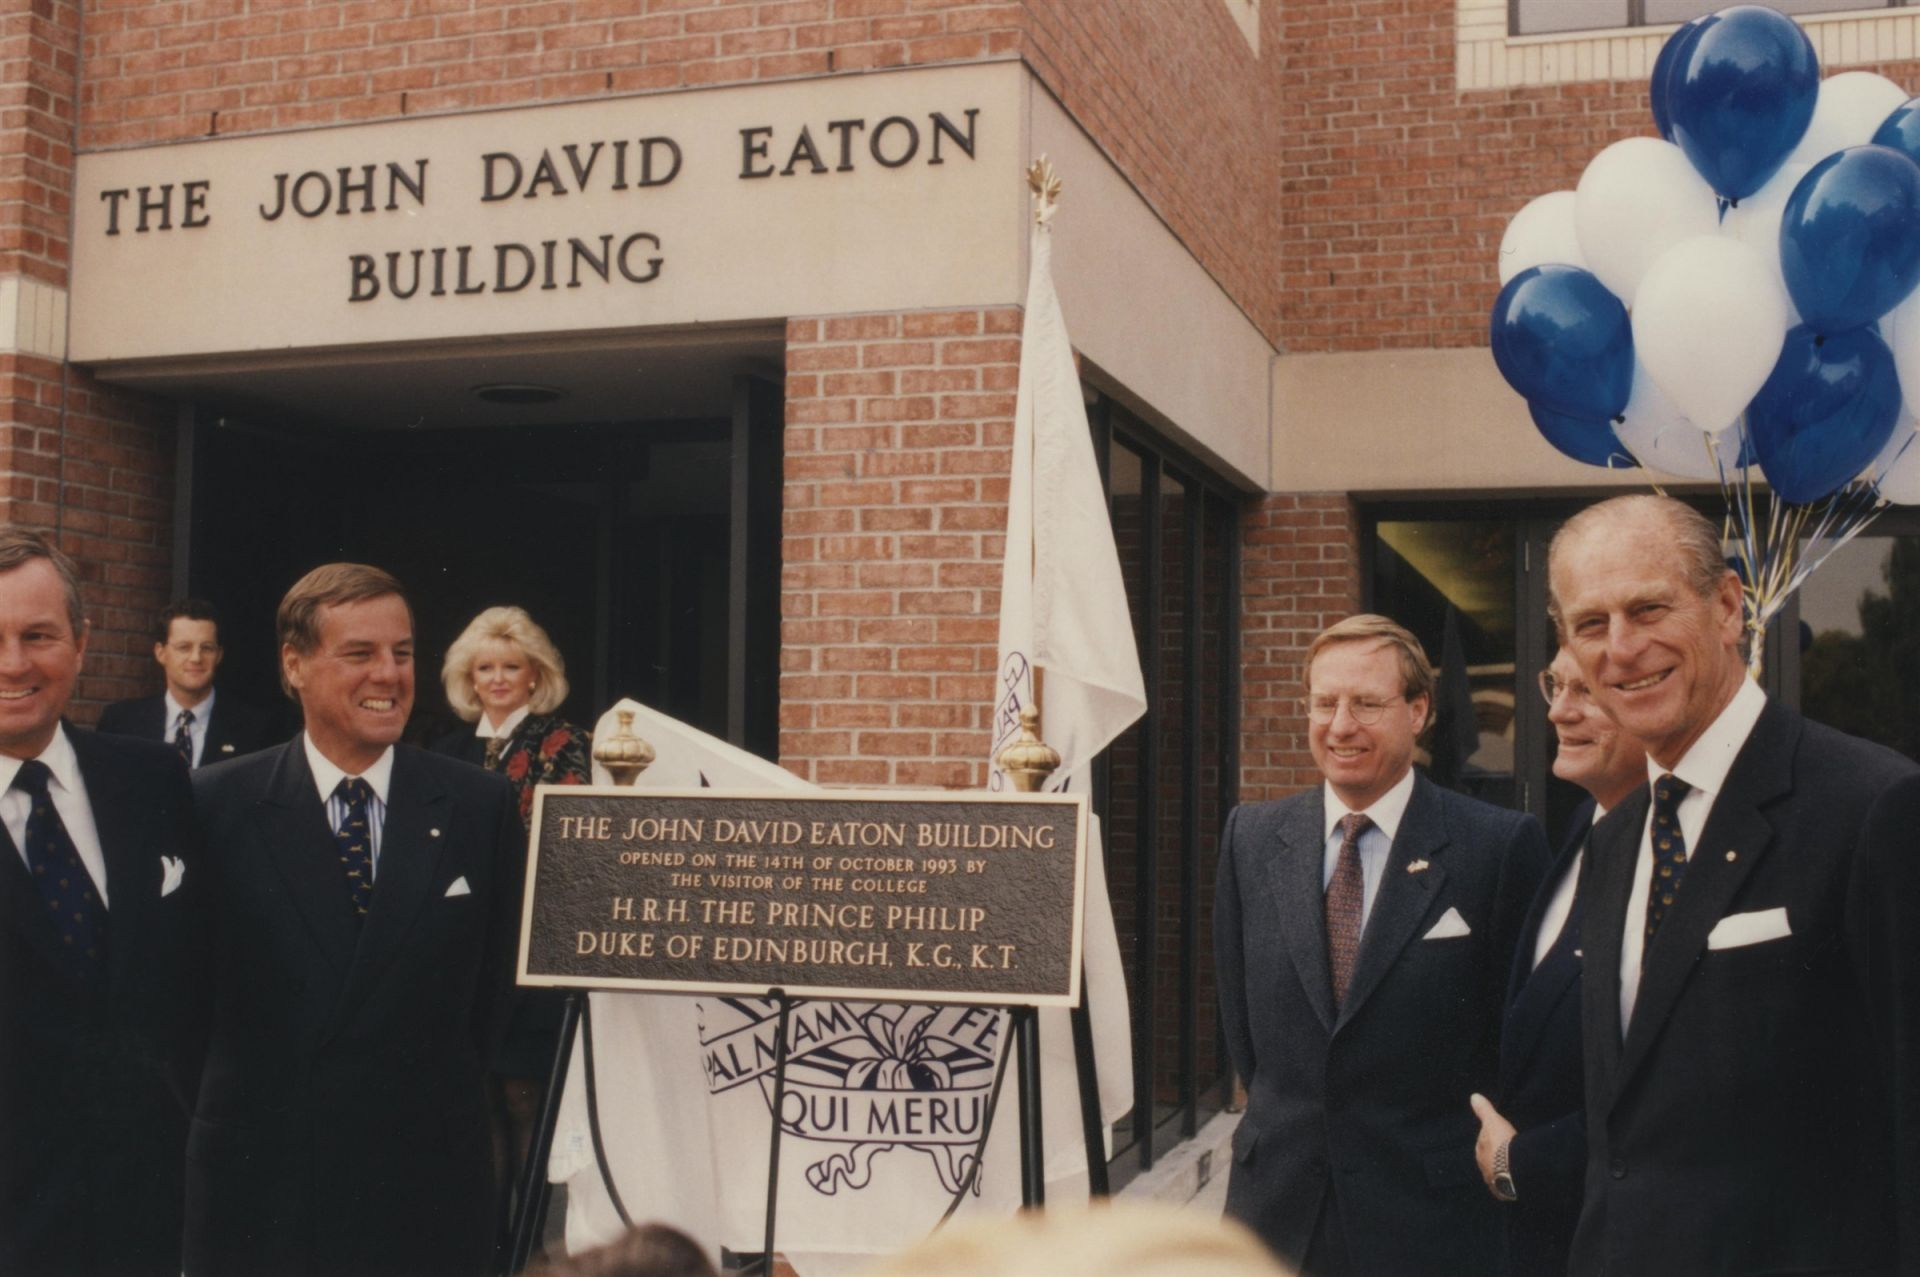 1993-1994_Prince Philip Visit Opening of The John David Eaton Building